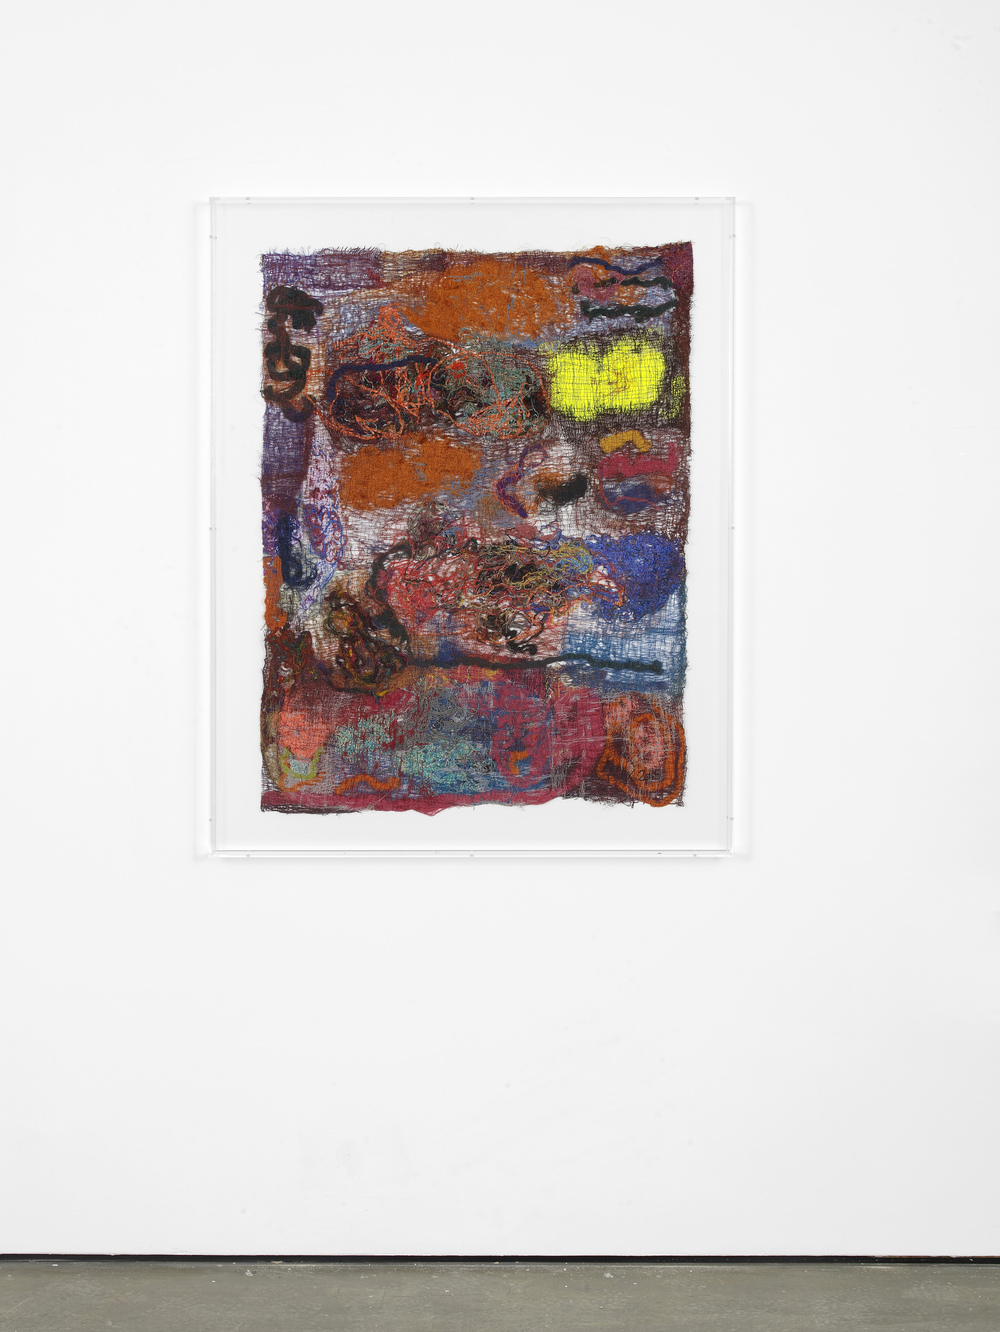 Sediment I 2015 Polyester, silk, cotton, wool, polyurethane 111 x 83 cm / 43.7 x 32.6 in 128.2 x 101.2 x 7 cm / 50.4 x 39.8 x 2.7 in (framed)